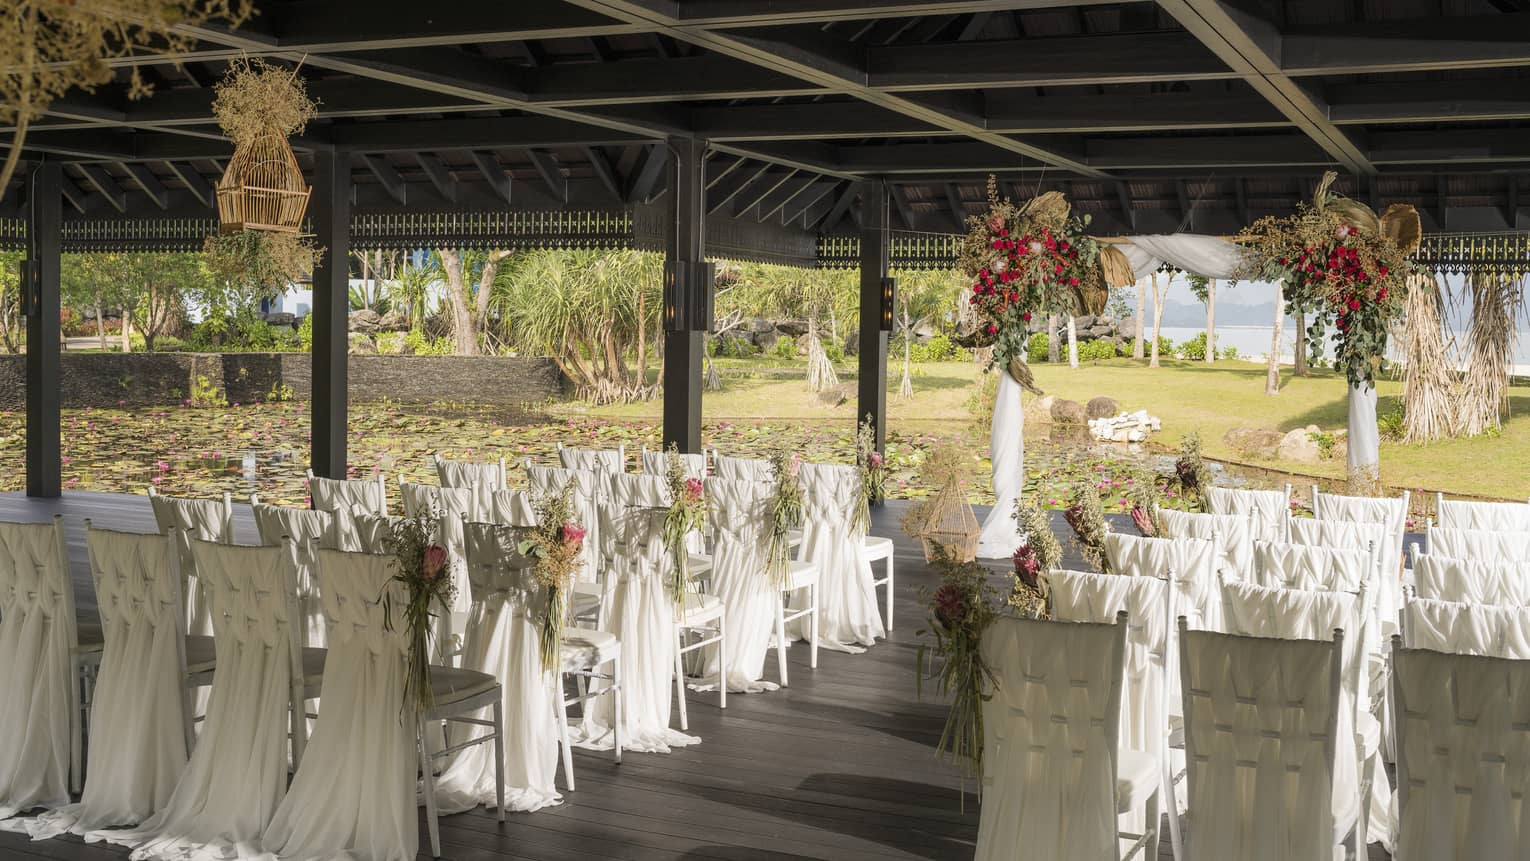 Outdoor wedding reception under pavilion, rows of chairs with white linens